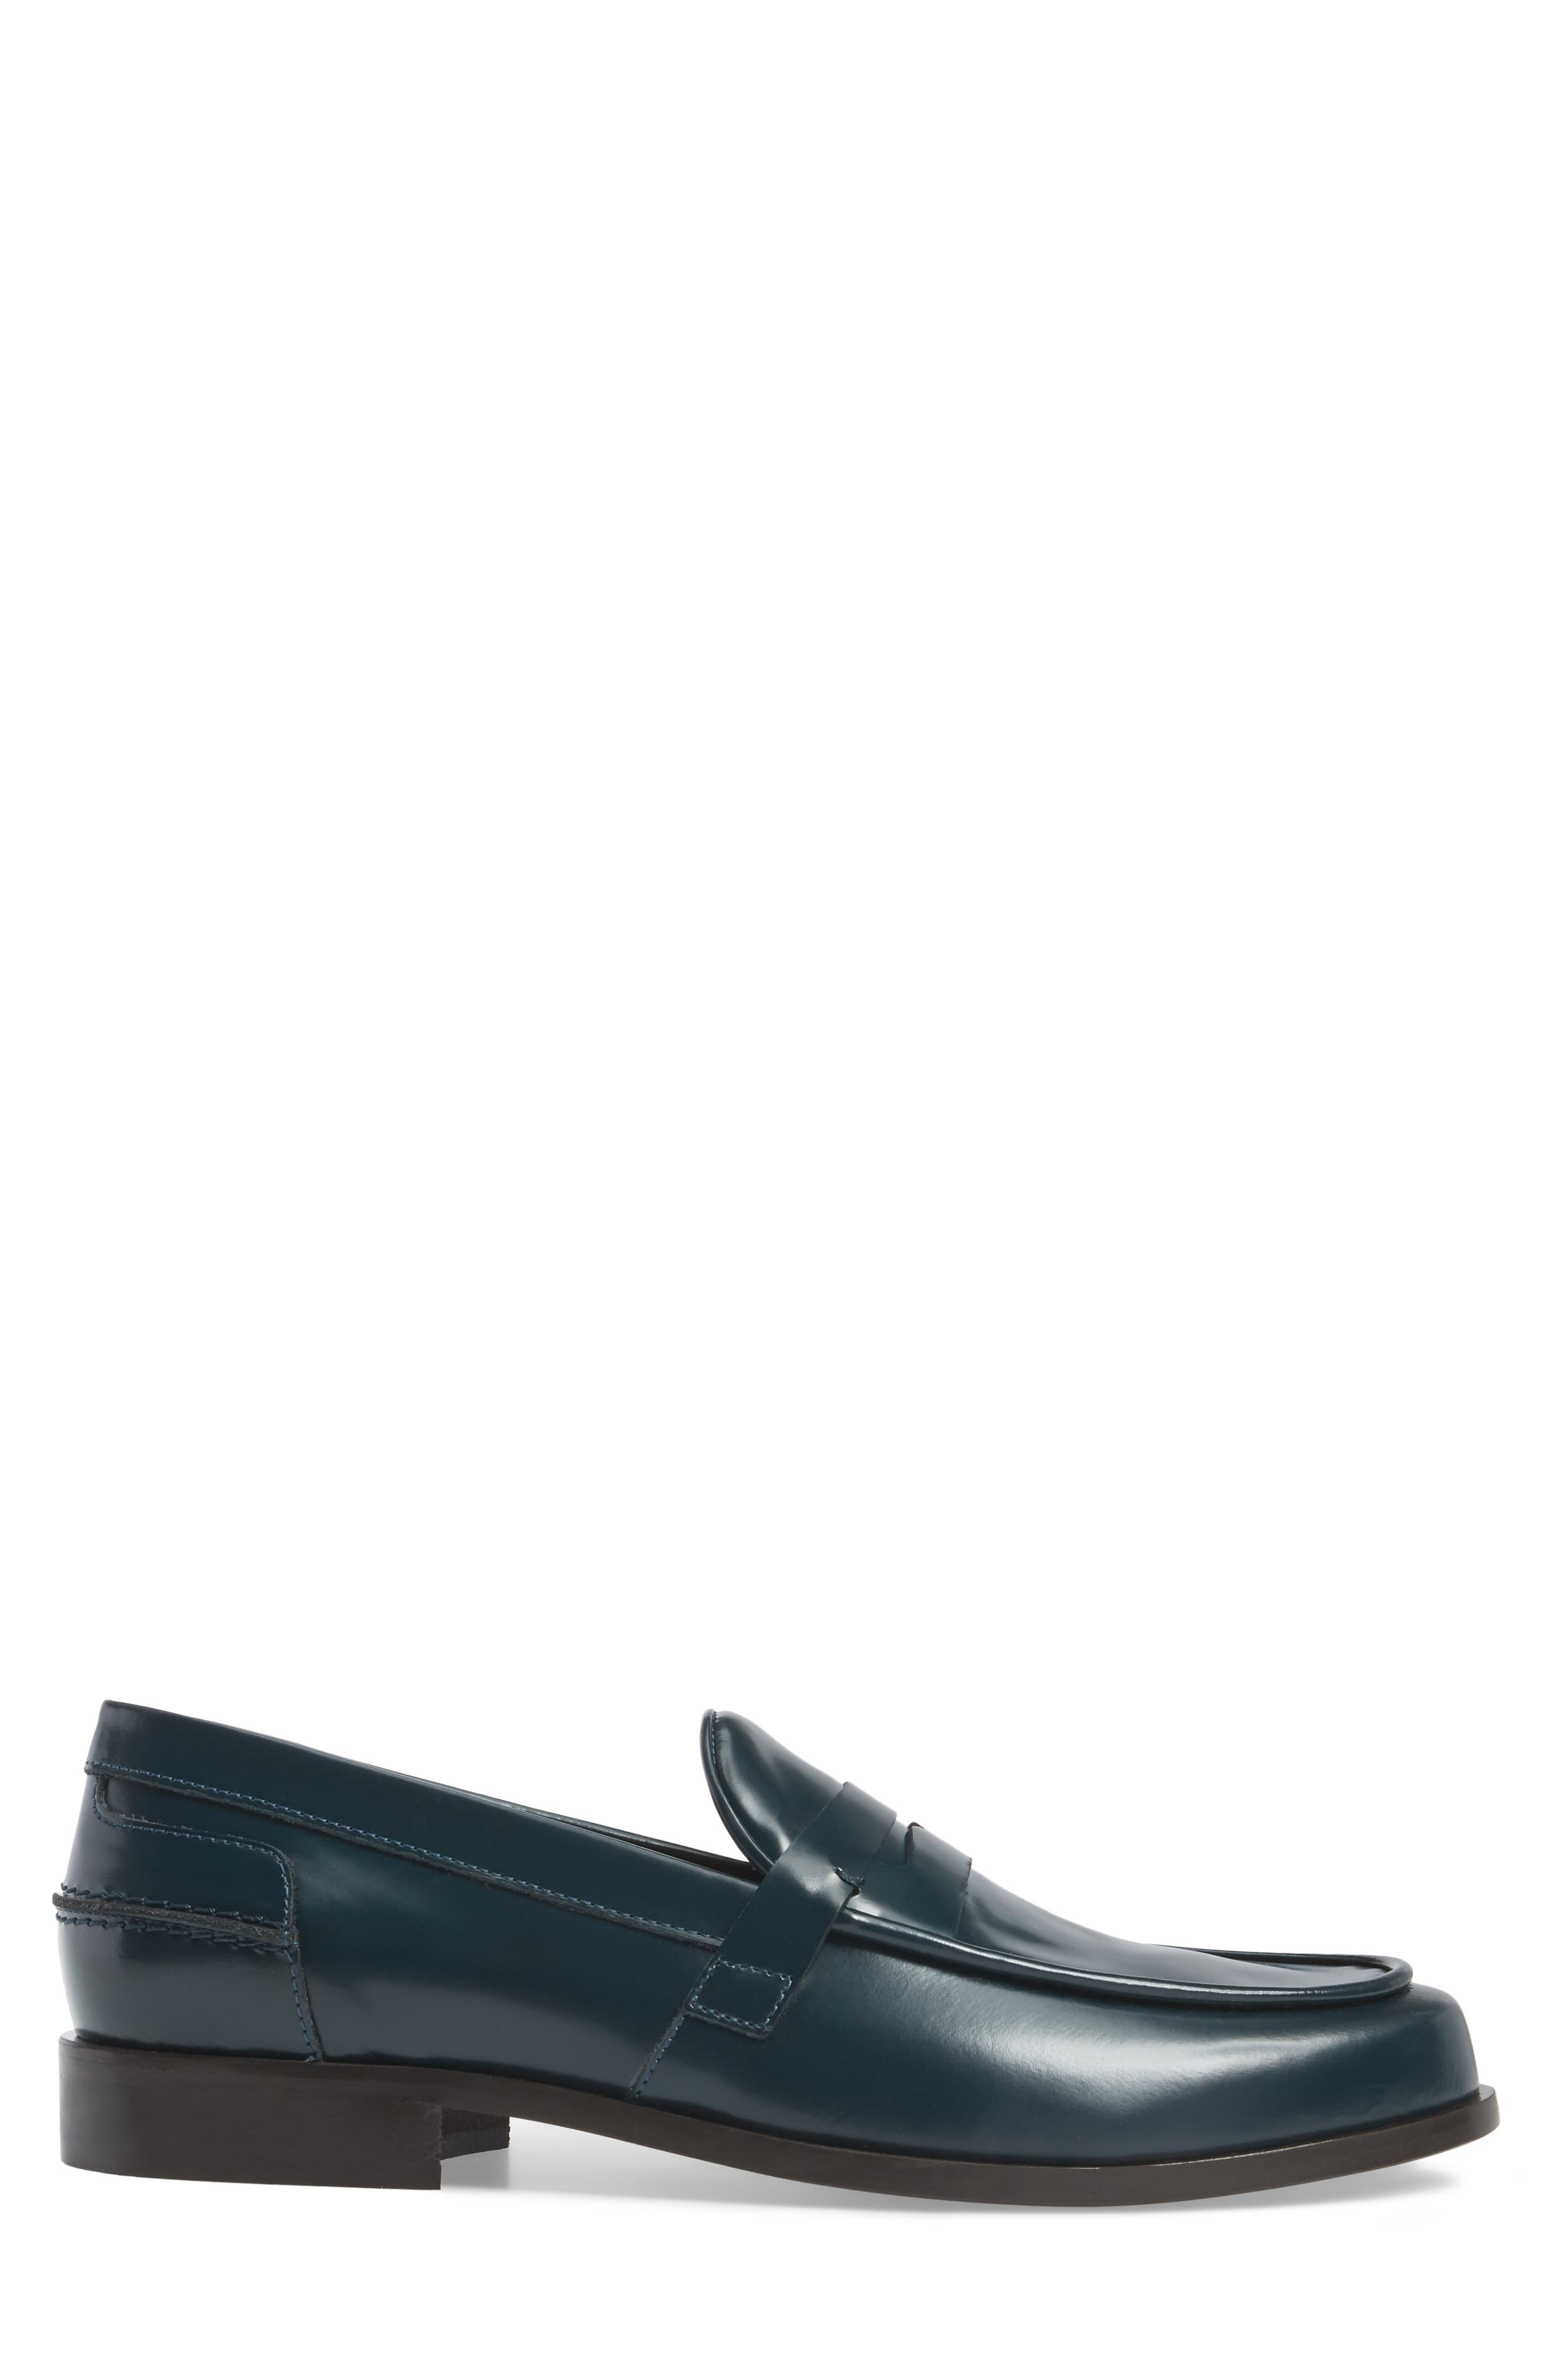 Donald J Pliner Sawyer Penny Loafer,                             Alternate thumbnail 6, color,